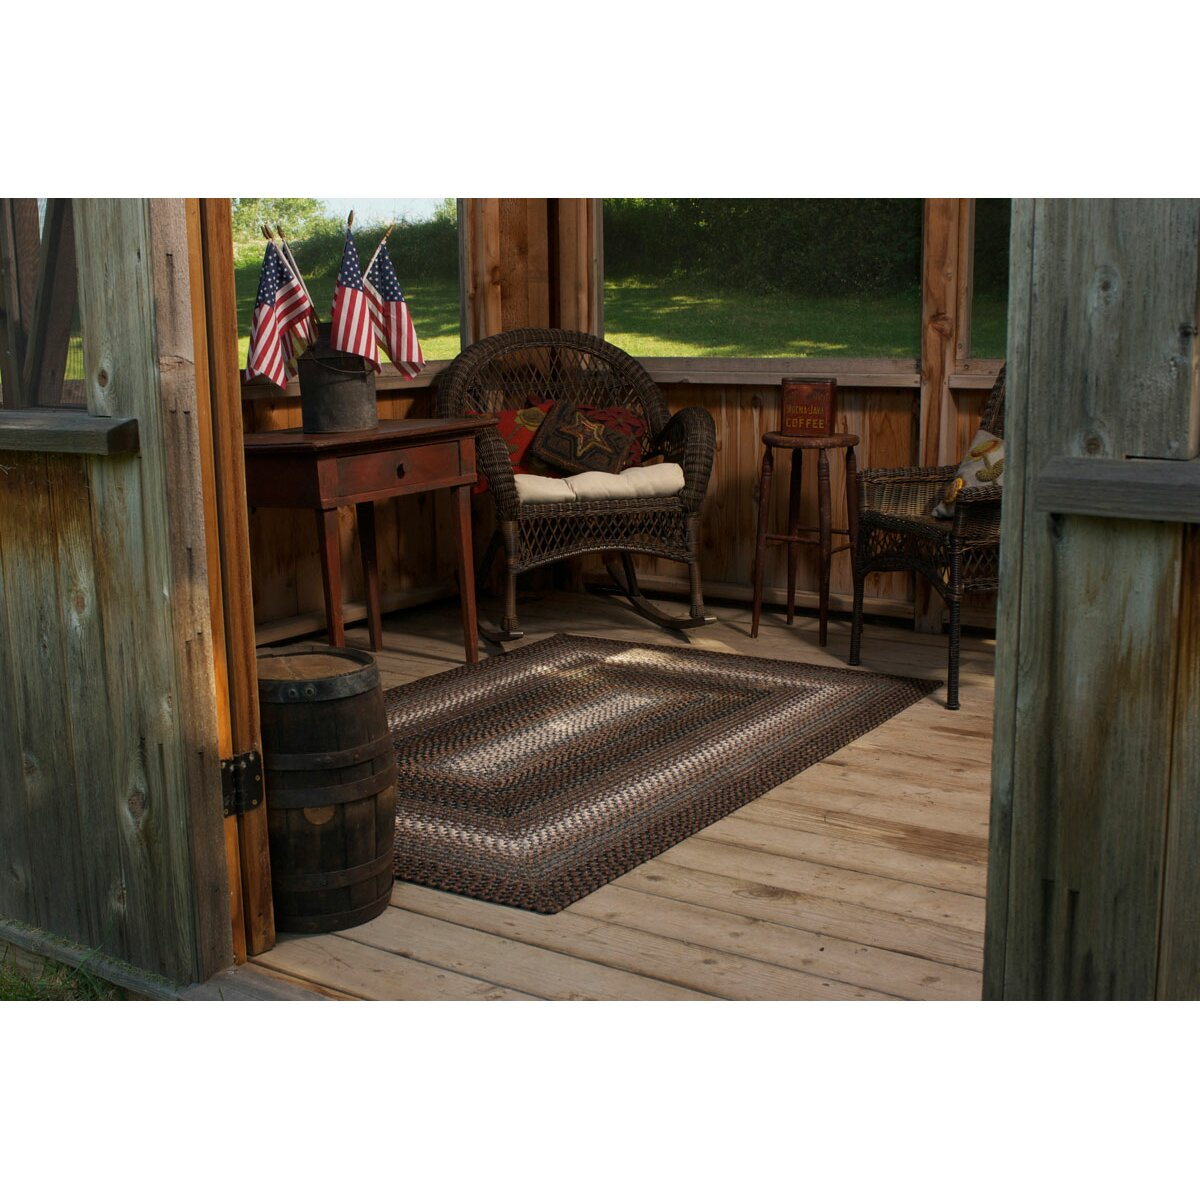 Garden Decor Nutty Rug: Homespice Decor Ultra-Durable Driftwood Indoor/Outdoor Rug